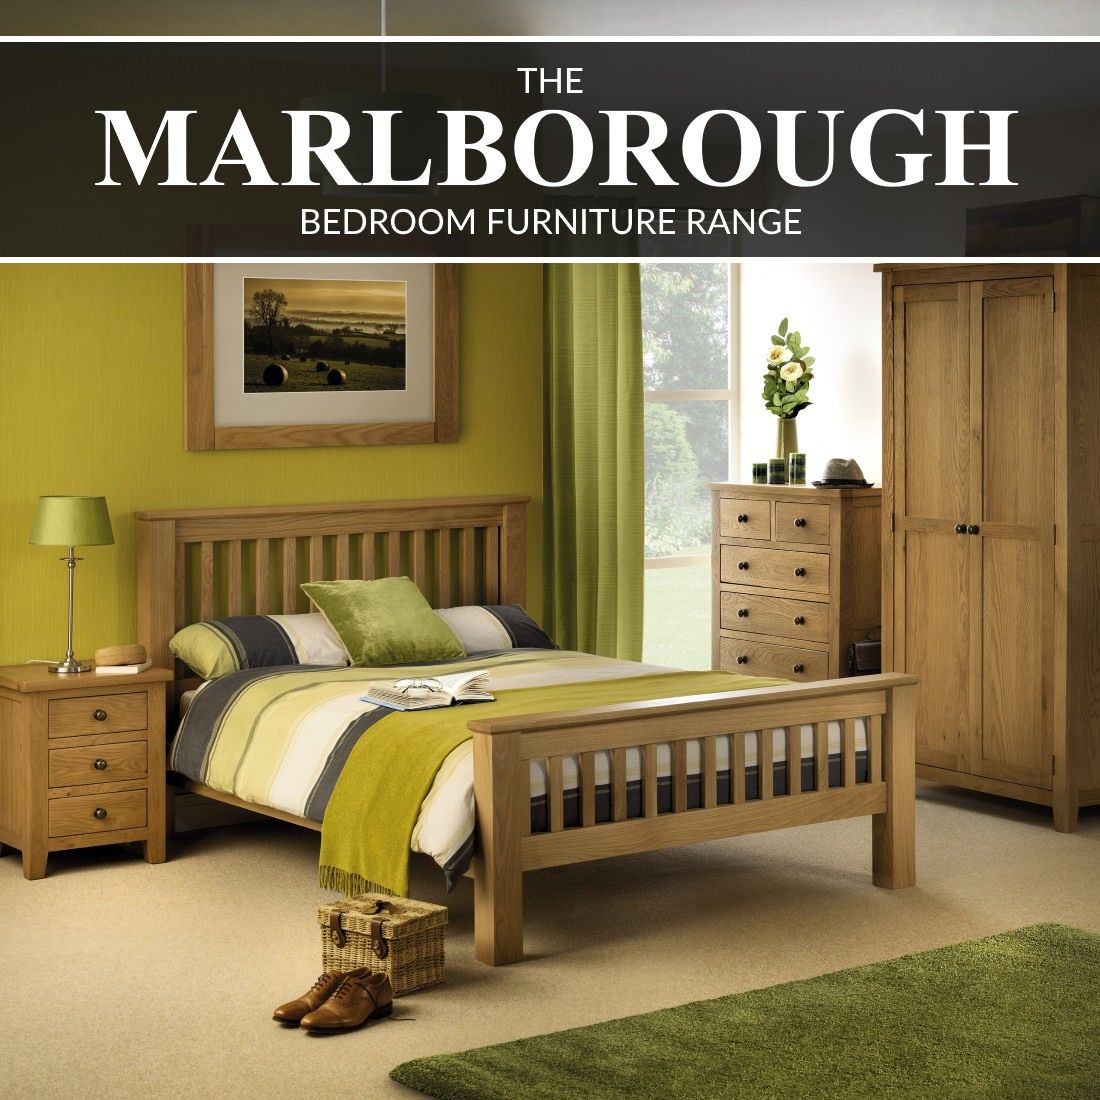 The Julian Bowen Marlborough Bedroom Furniture Range from 9 Home